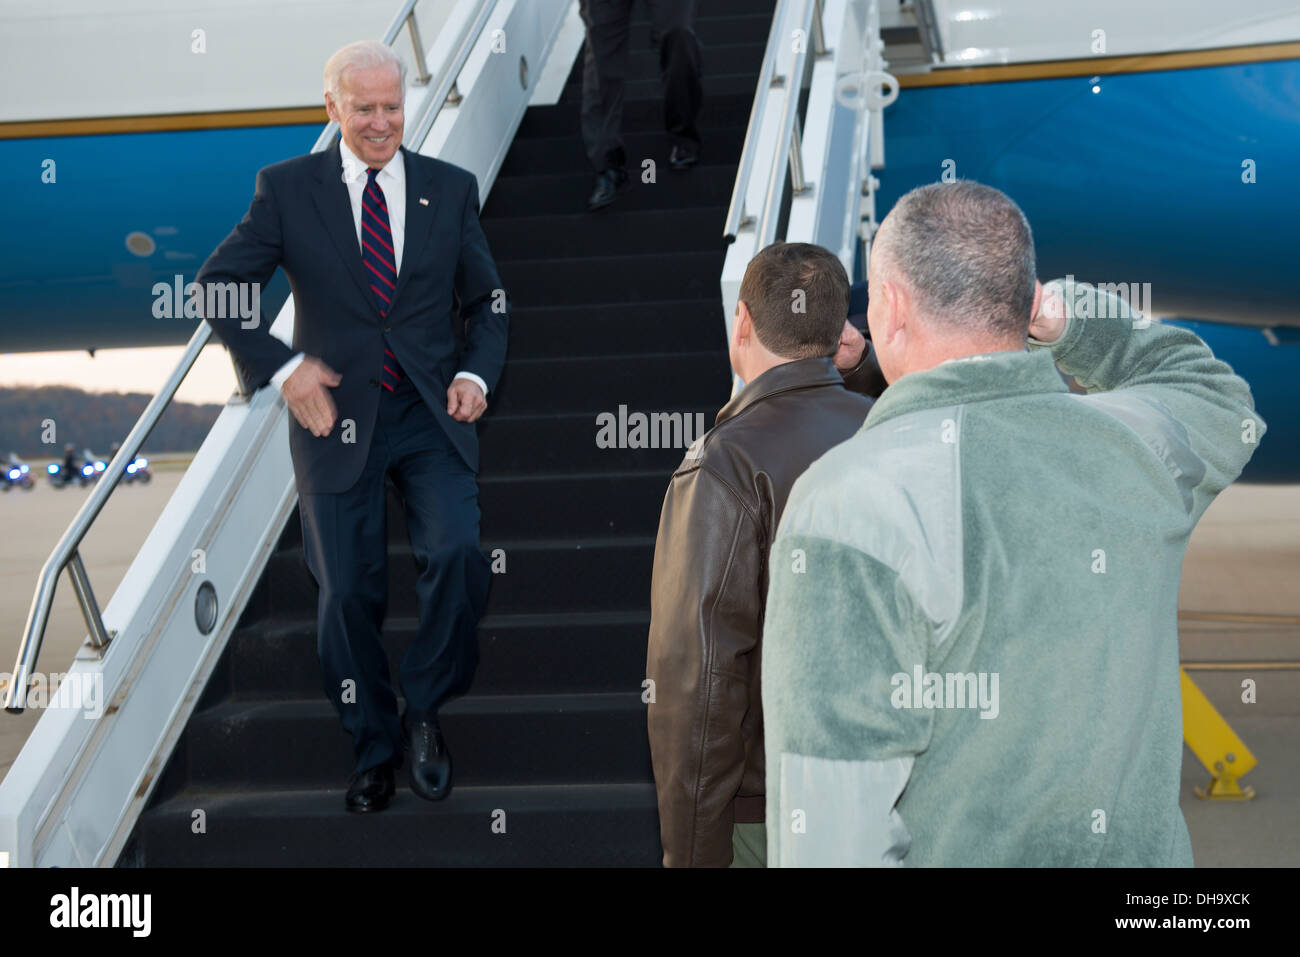 Vice President Joe Biden arrives at the 130th Airlift Wing, Charleston, W.Va., to attend the Jefferson-Jackson Dinner at the Charleston Civic Center, Nov. 2, 2013. - Stock Image